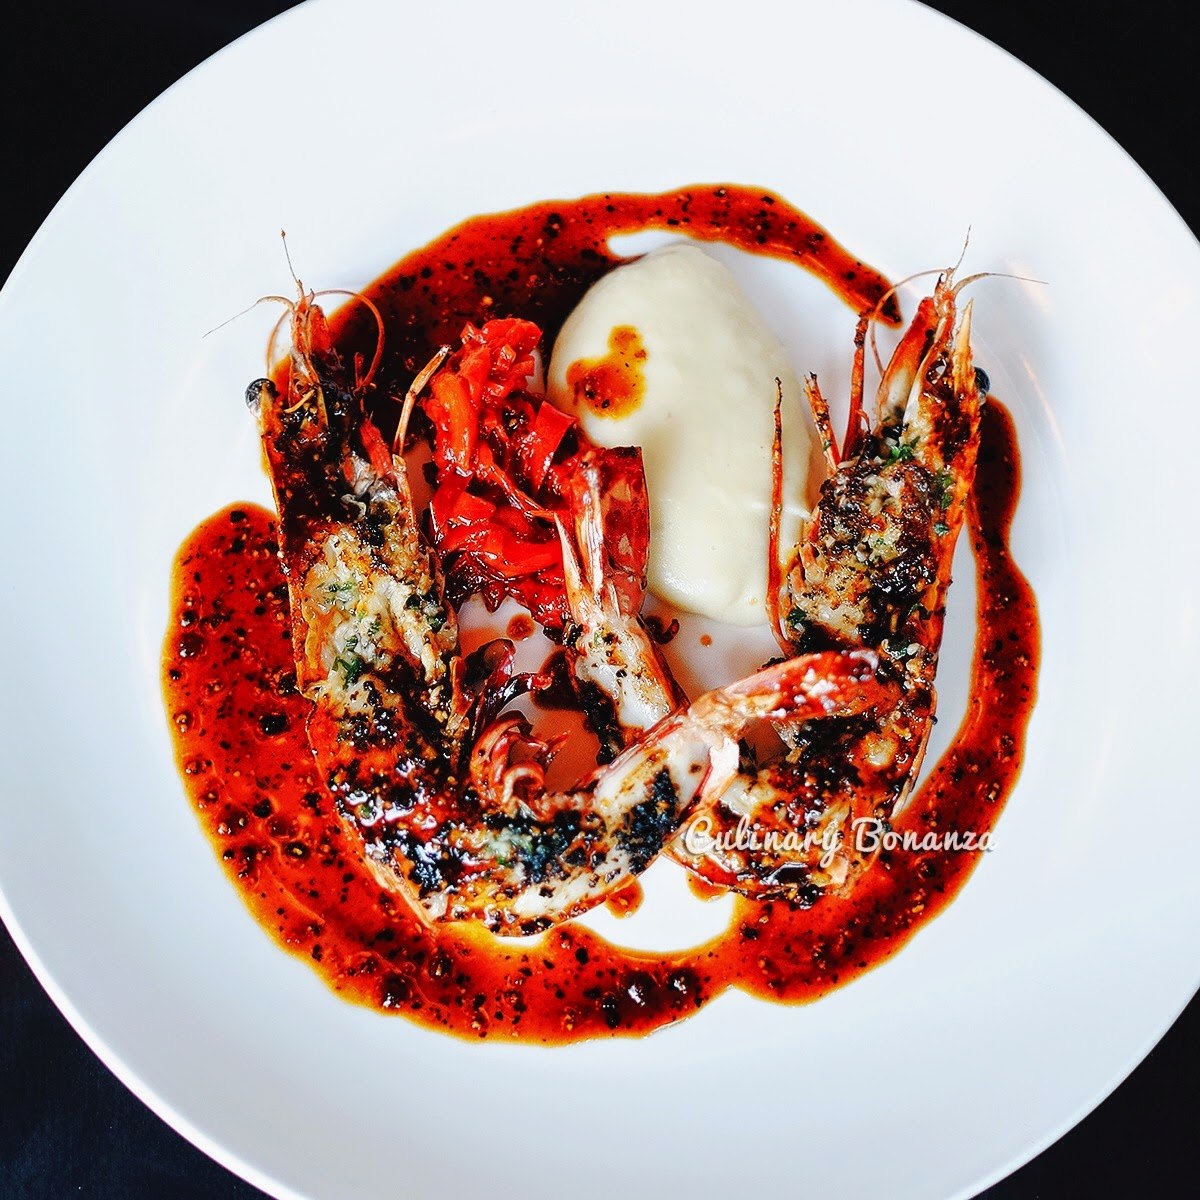 Crevette Geante Tigree - grilled jumbo tiger prawns, sauce Diablo, bell peppers & mash potato